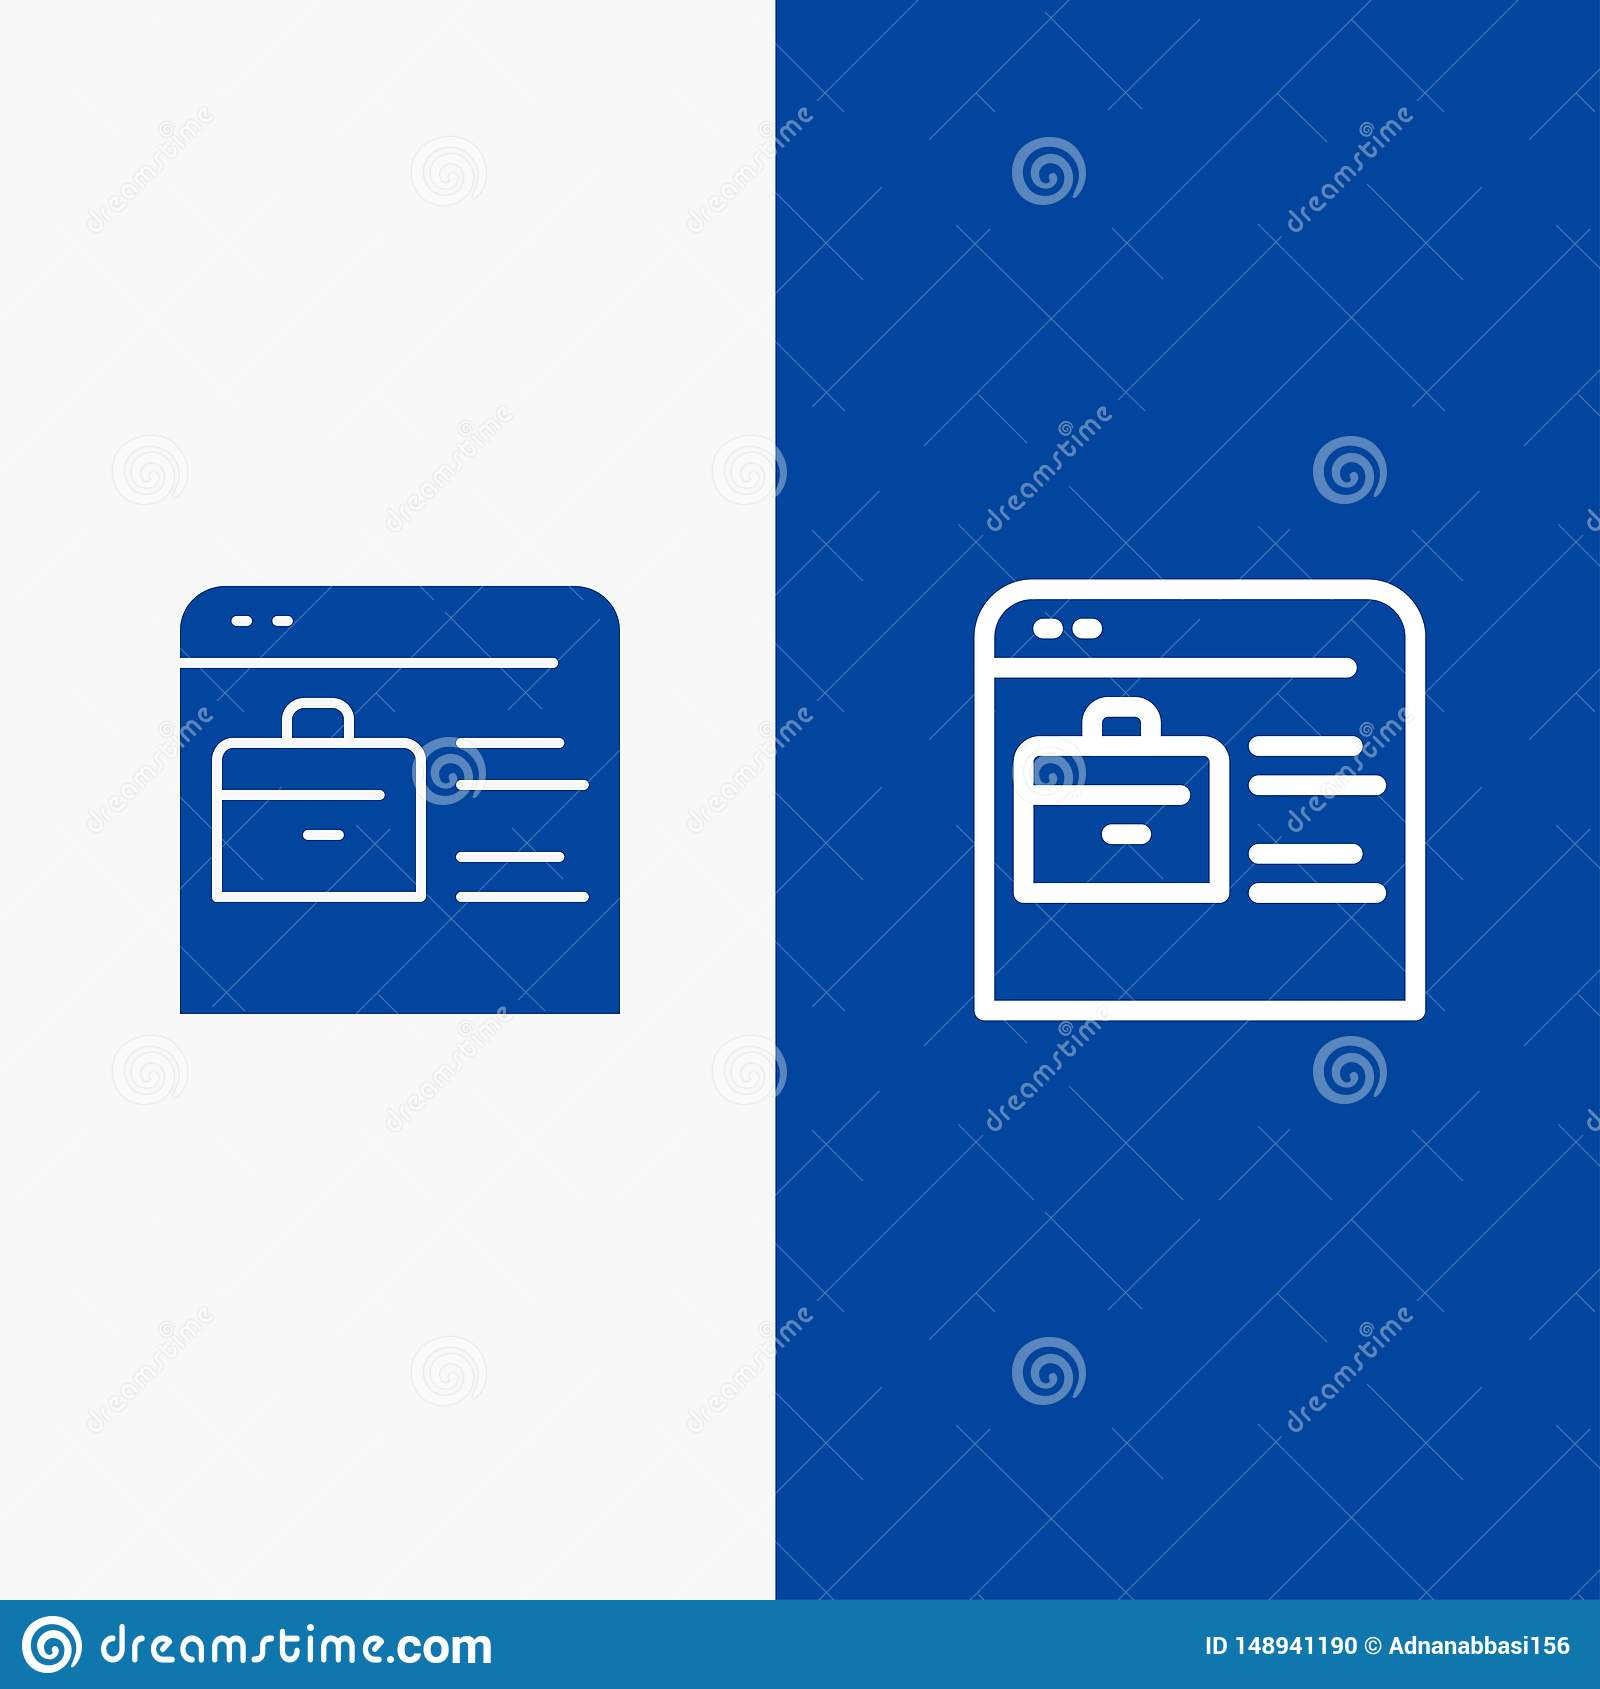 Bag Find Job Job Website Online Portfolio Line And Glyph Solid Icon Blue Banner Line And Glyph Solid Icon Blue Banner Stock Vector Illustration Of Blog Icon 148941190